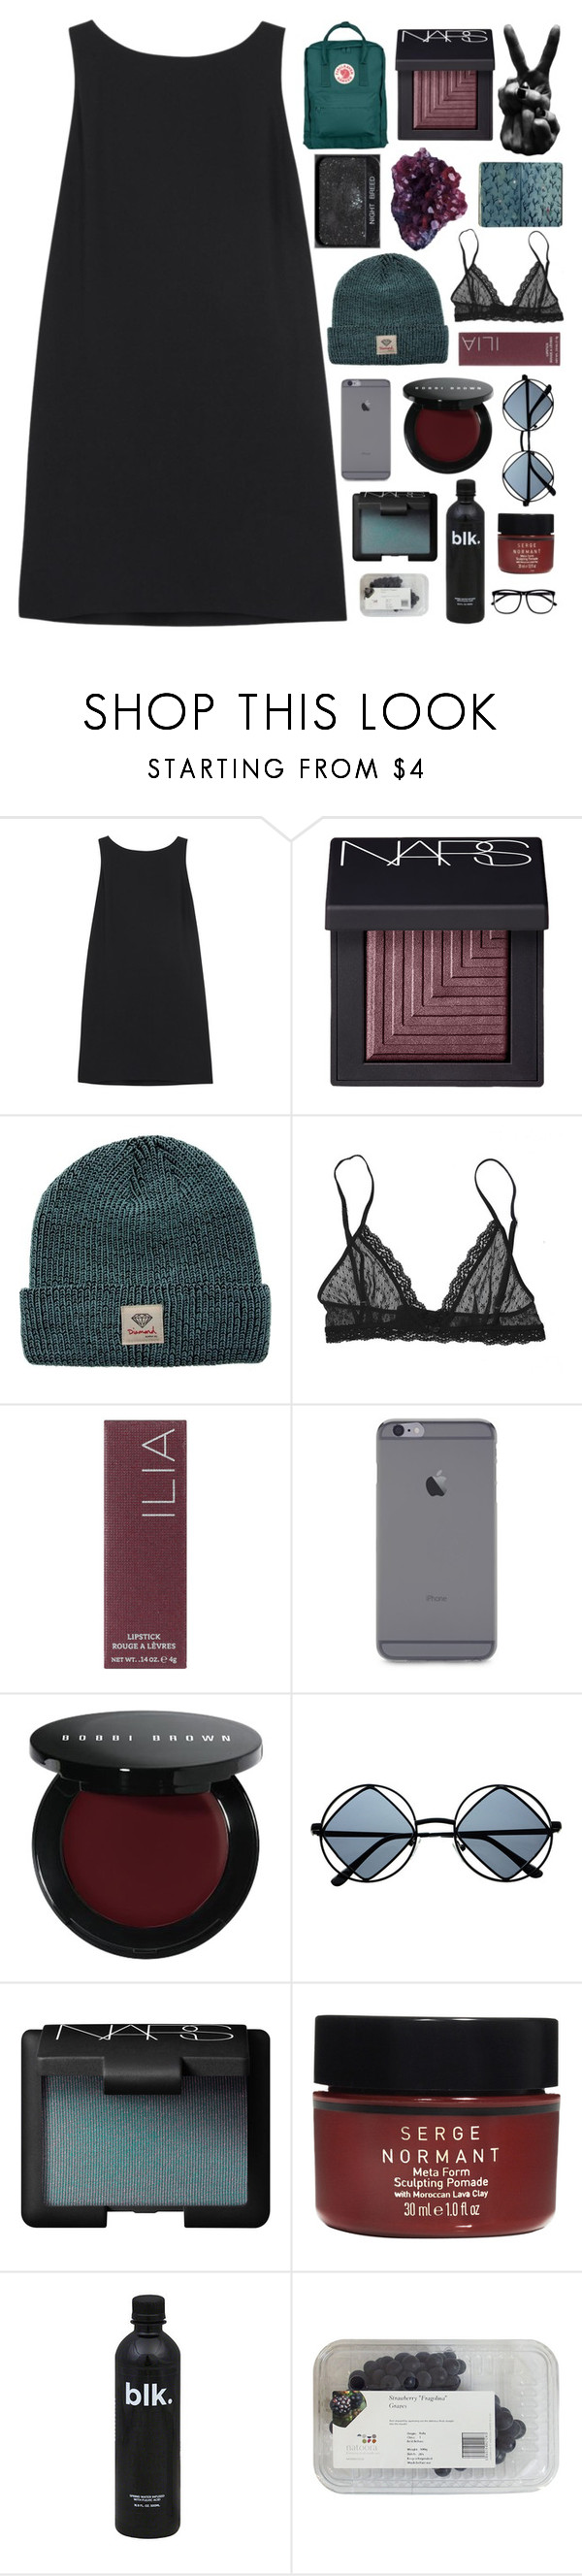 """""""what a dear"""" by tsunami-wxves ❤ liked on Polyvore featuring RED Valentino, NARS Cosmetics, DK, Diamond Supply Co., Eberjey, Ilia, Bobbi Brown Cosmetics, Retrò, Serge Normant and H&M"""